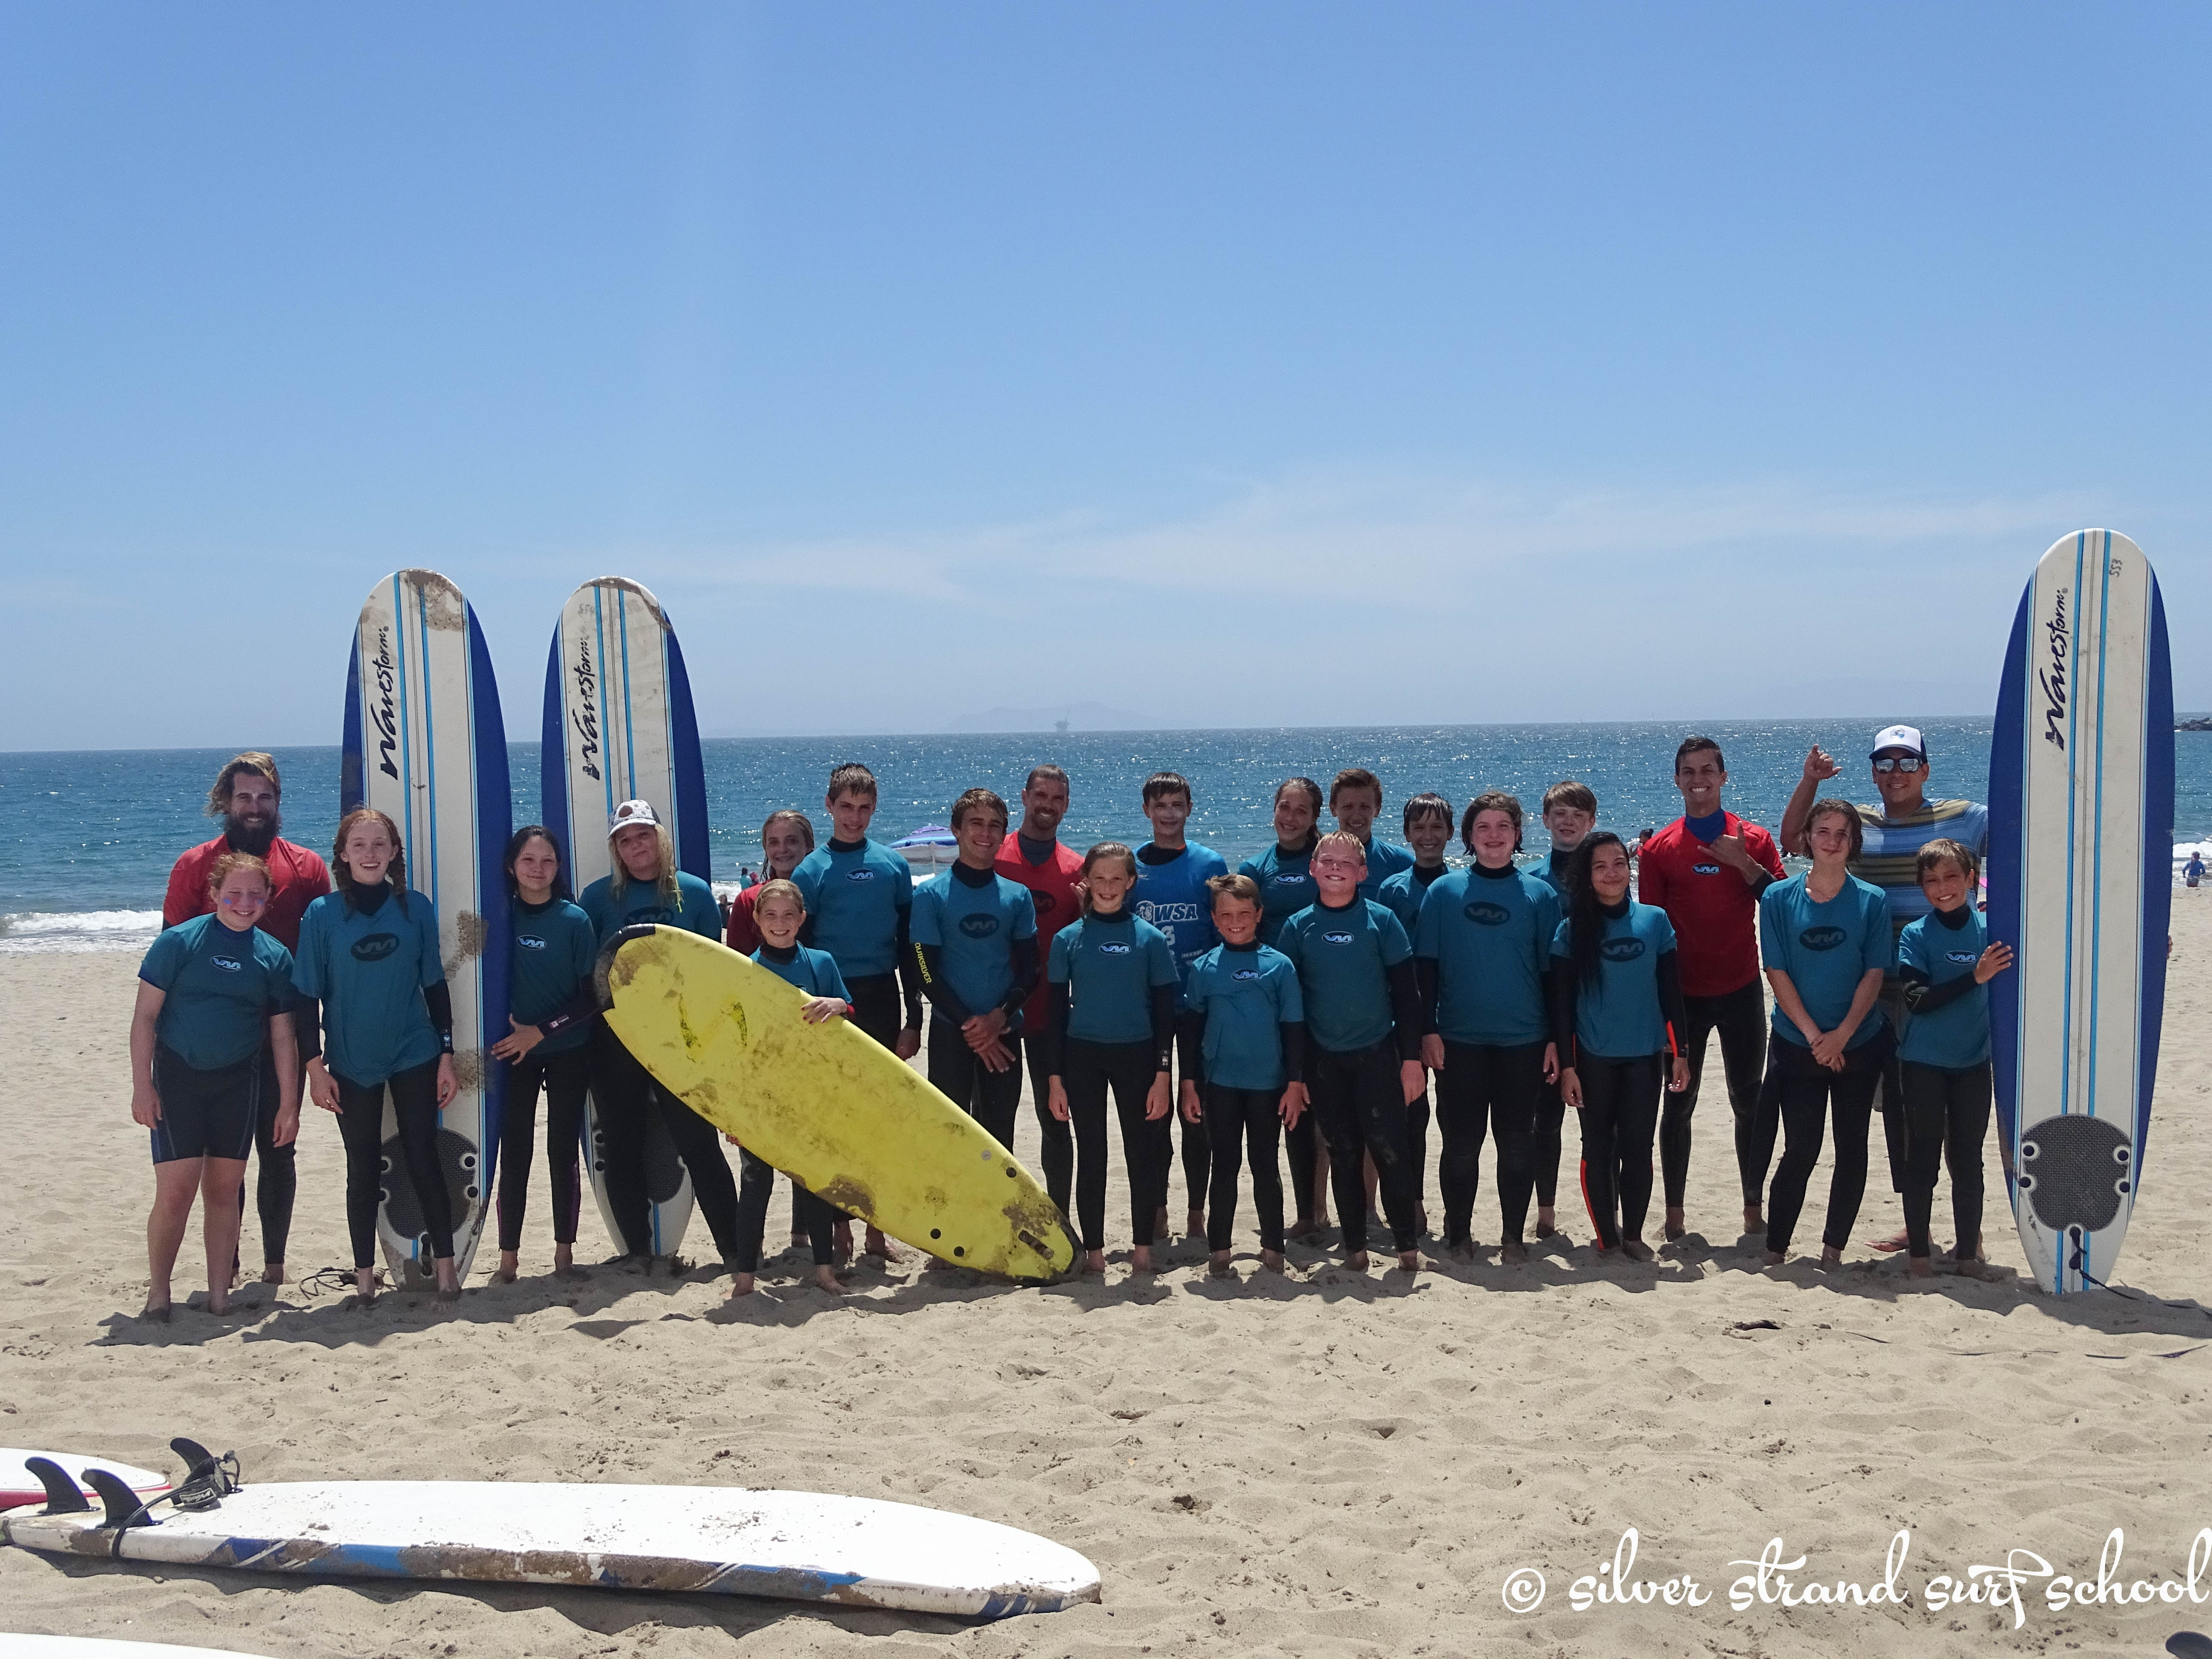 Welcome to Silver Strand Surf School!